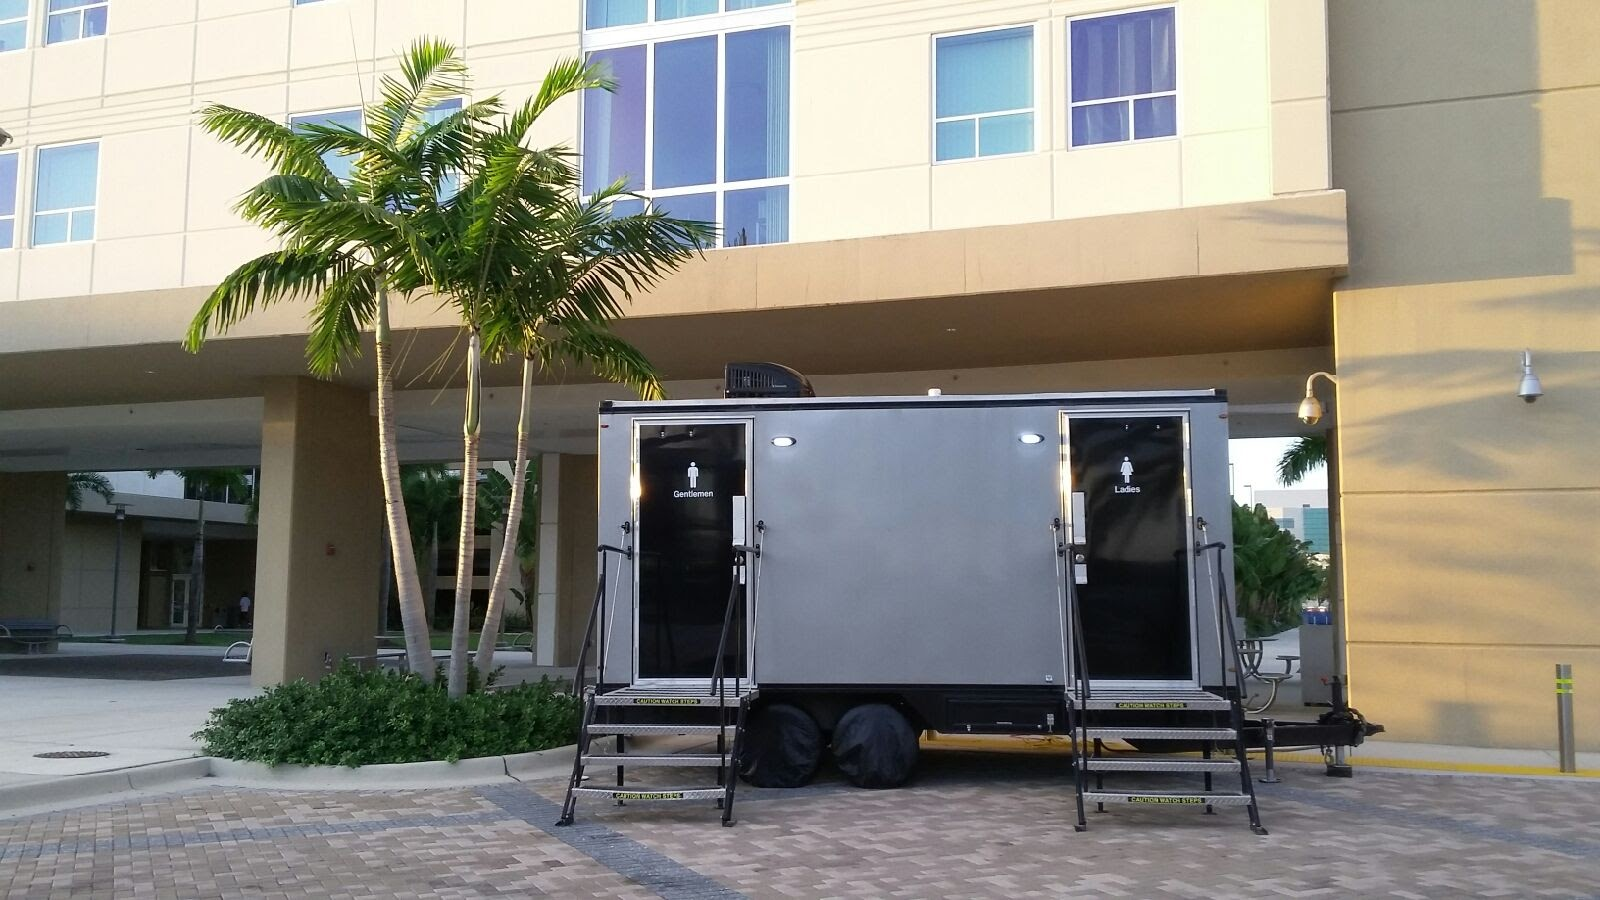 The YML Portable Restrooms Experience Yml Portable Restrooms - Luxury portable bathrooms